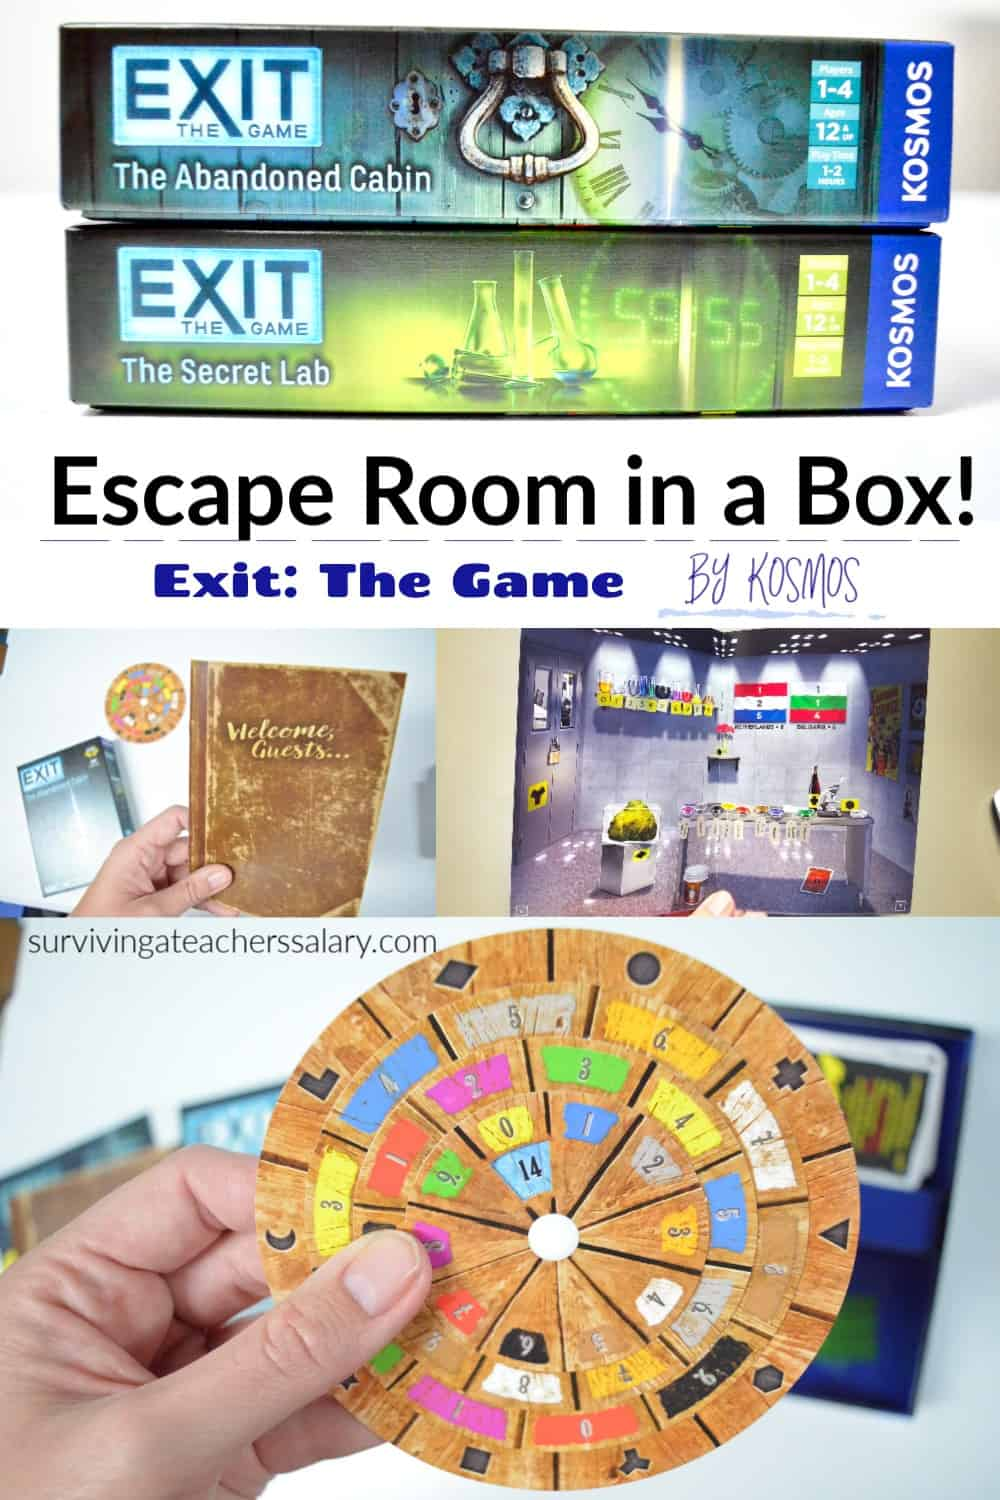 Home Escape Room Game Night by KOSMOS - EXIT: The Game series